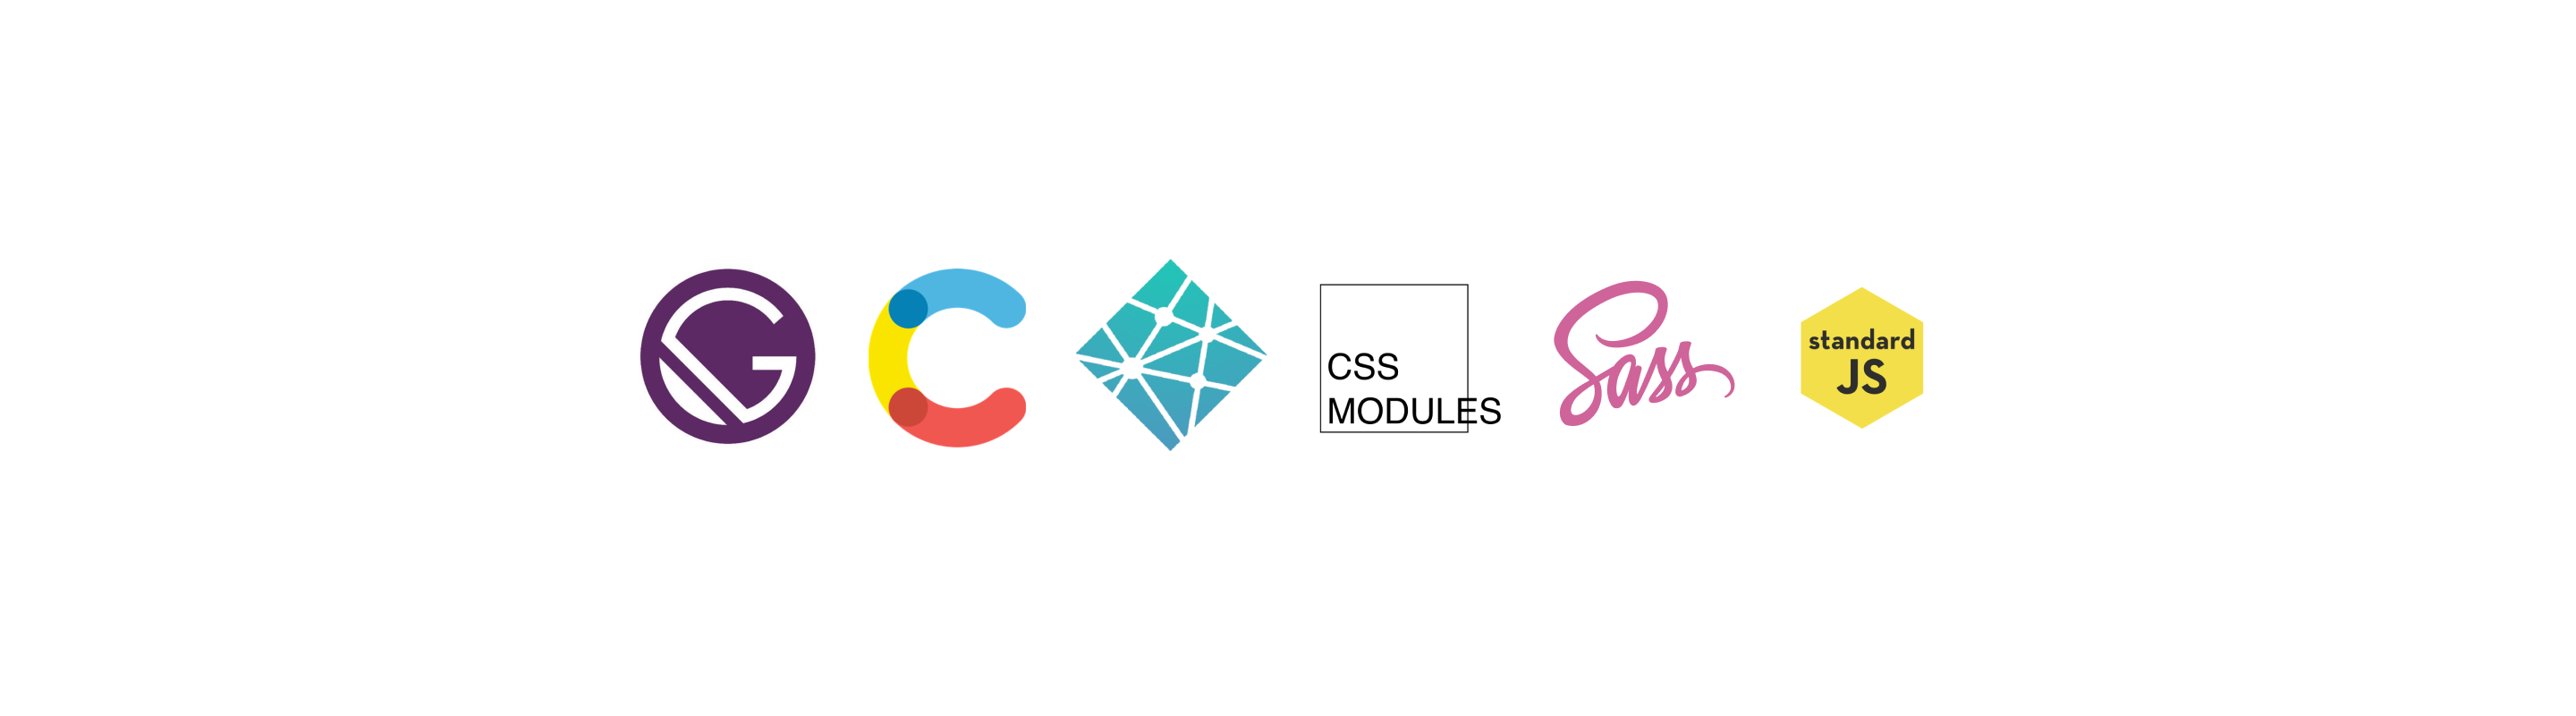 Beyond the traditional CMS stack - Dynamo